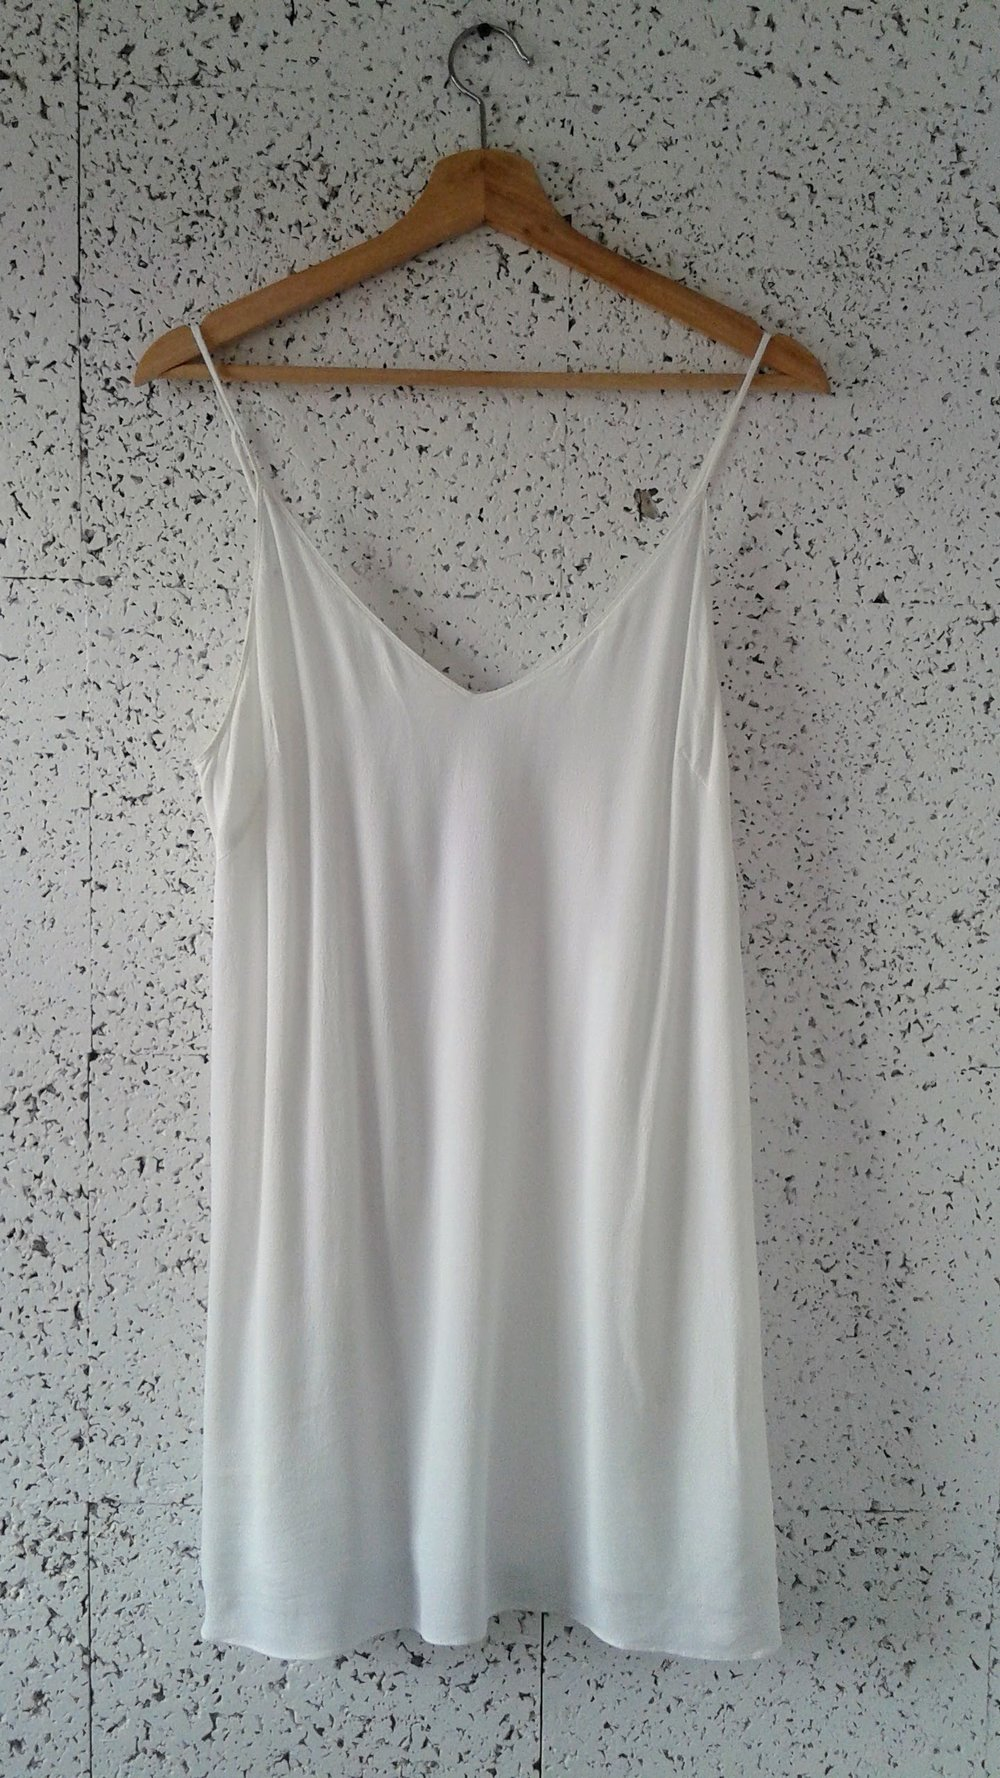 Wilfred dress; Size M, $26